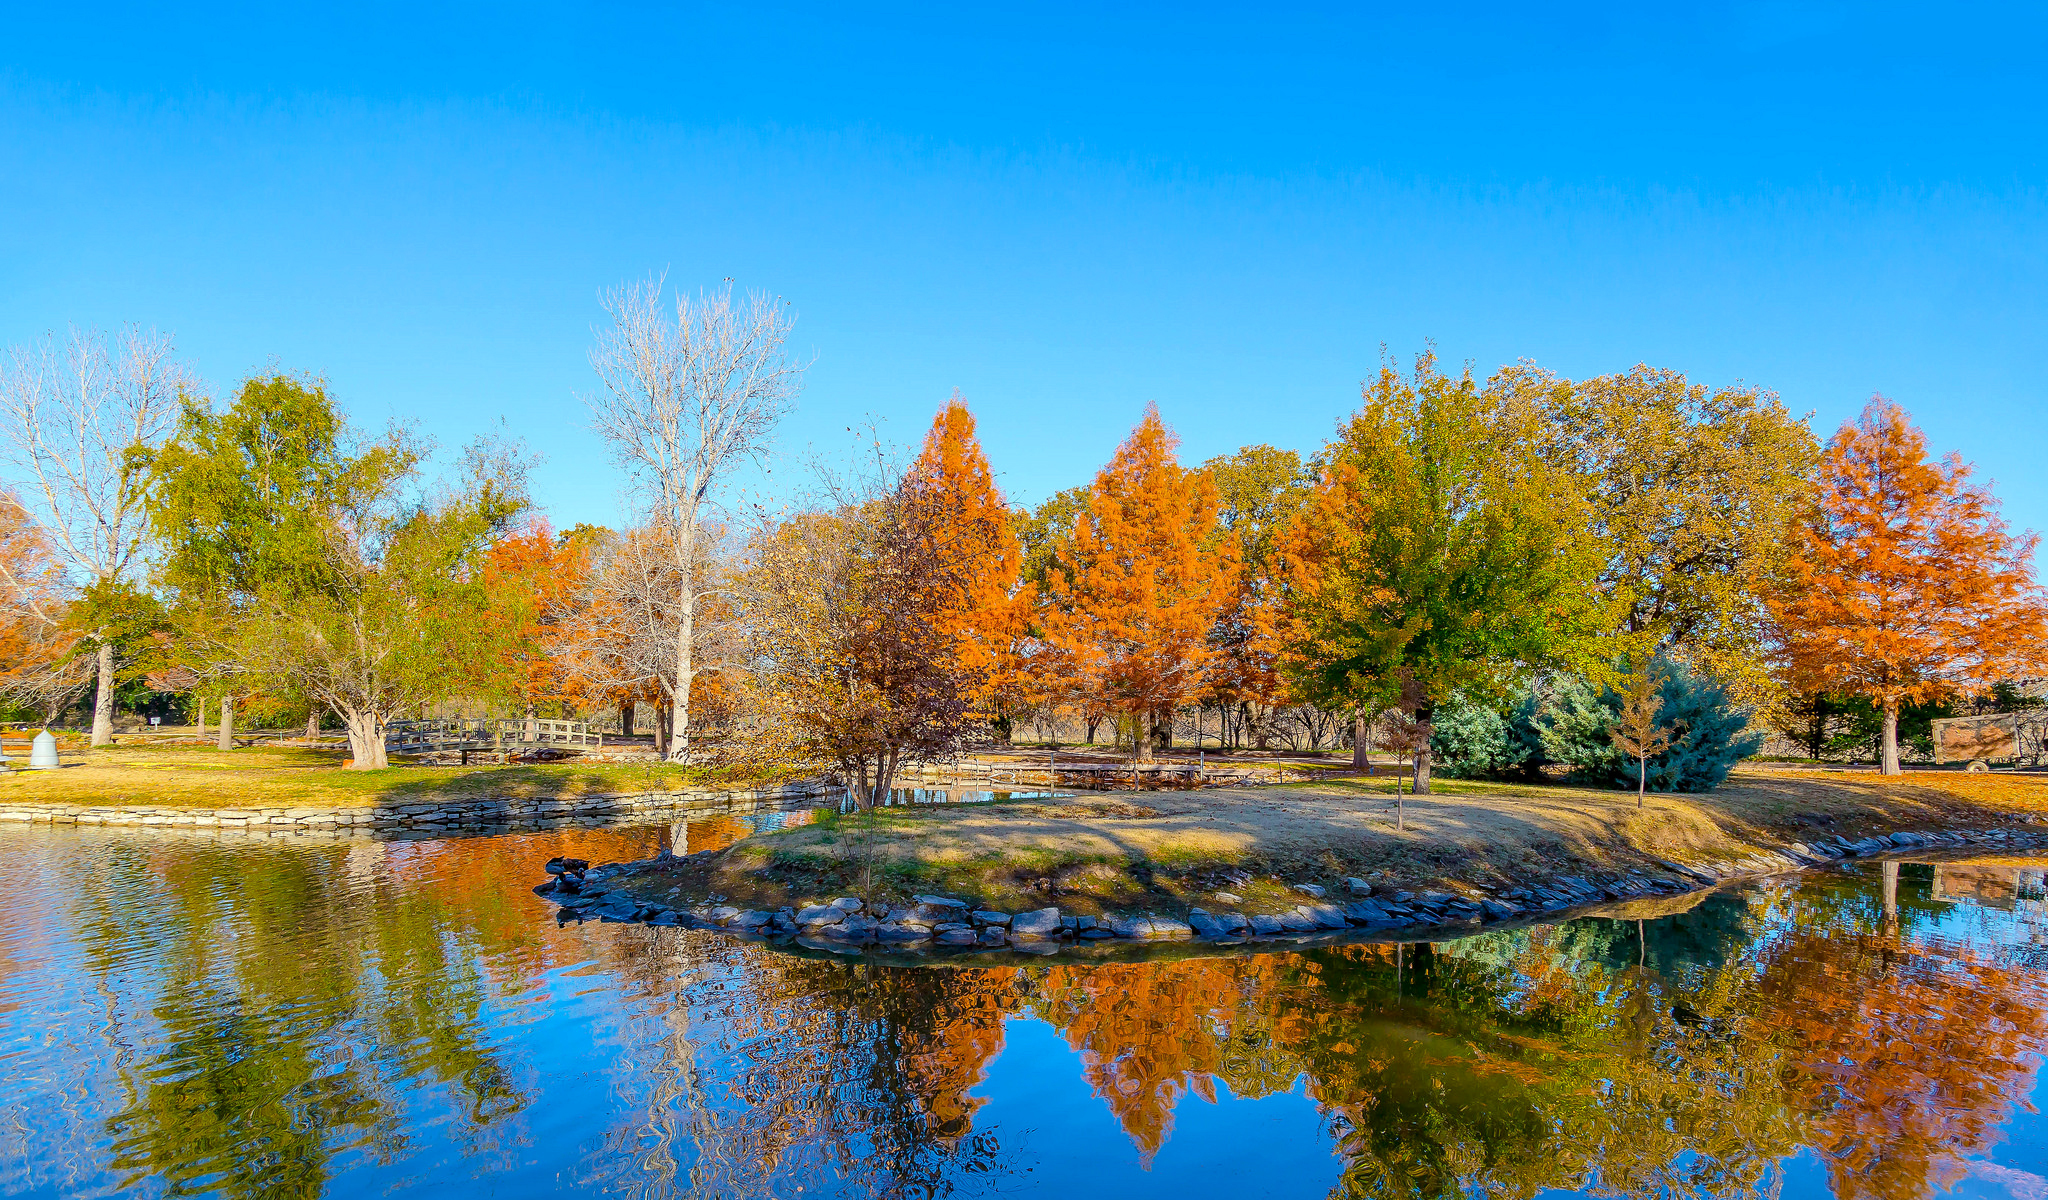 123576 free wallpaper 240x320 for phone, download images Nature, Autumn, Usa, United States, Pond, Texas, Botanic Park, Botanical Park 240x320 for mobile